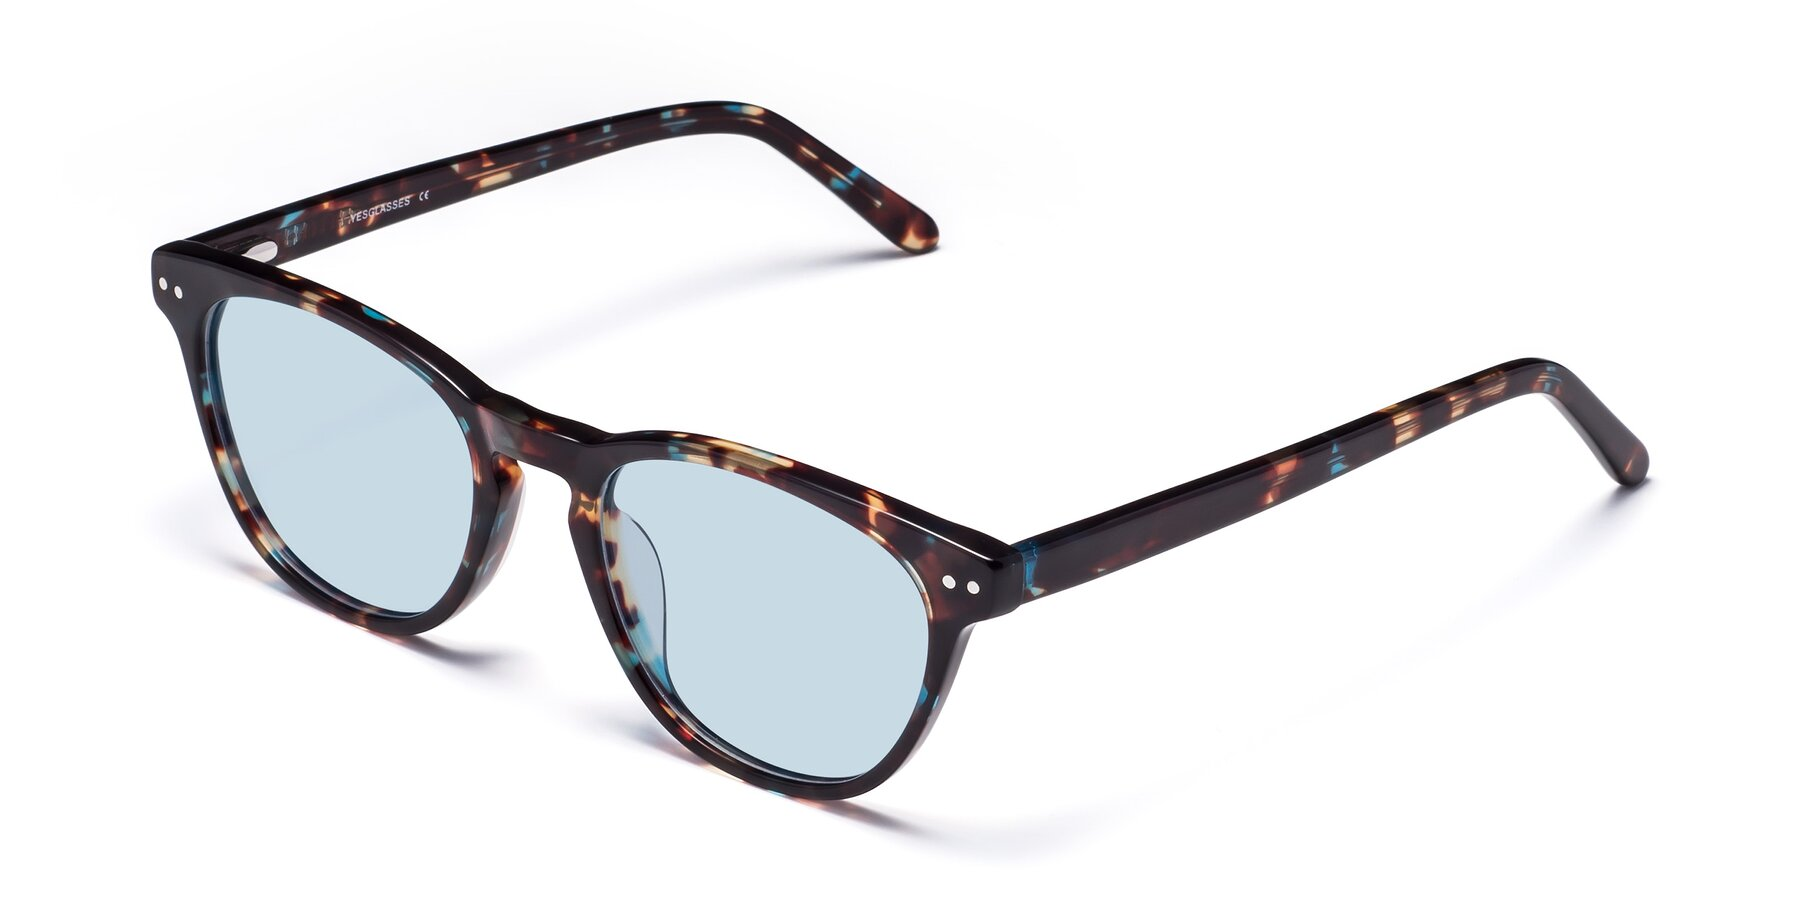 Angle of Blaze in Tortoise-Blue with Light Blue Tinted Lenses